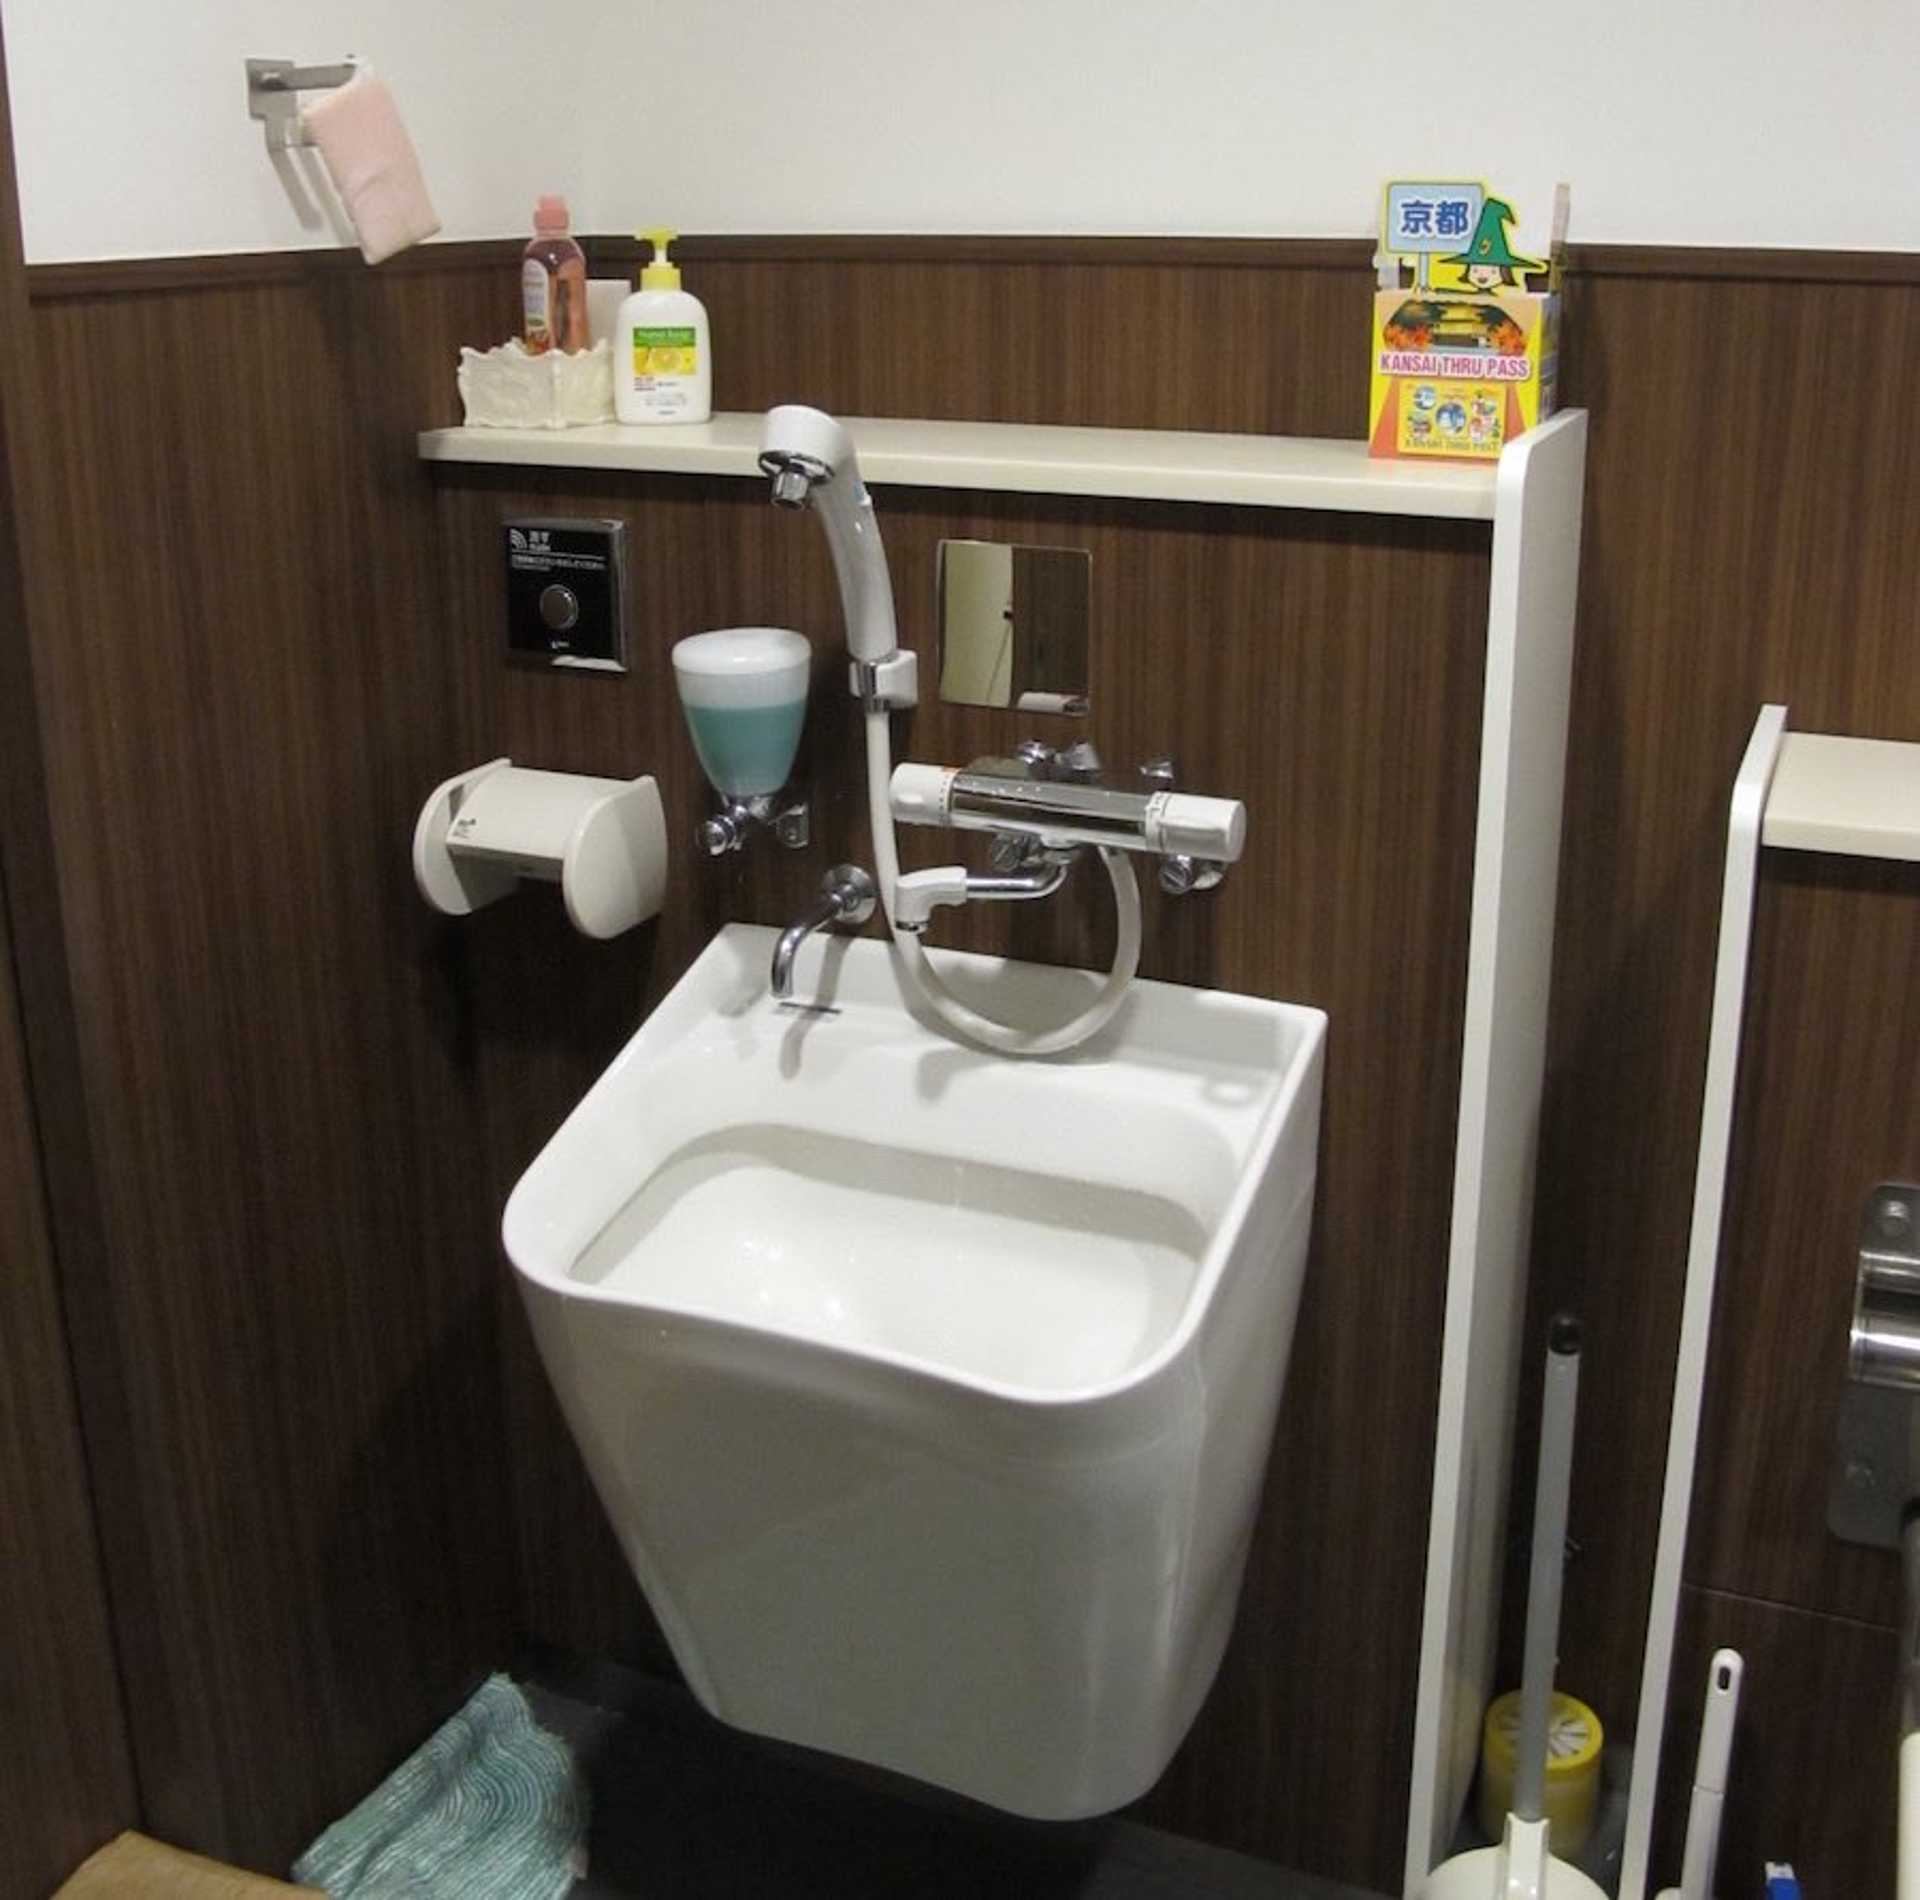 You can find the ablution area in the washroom located on the same floor.